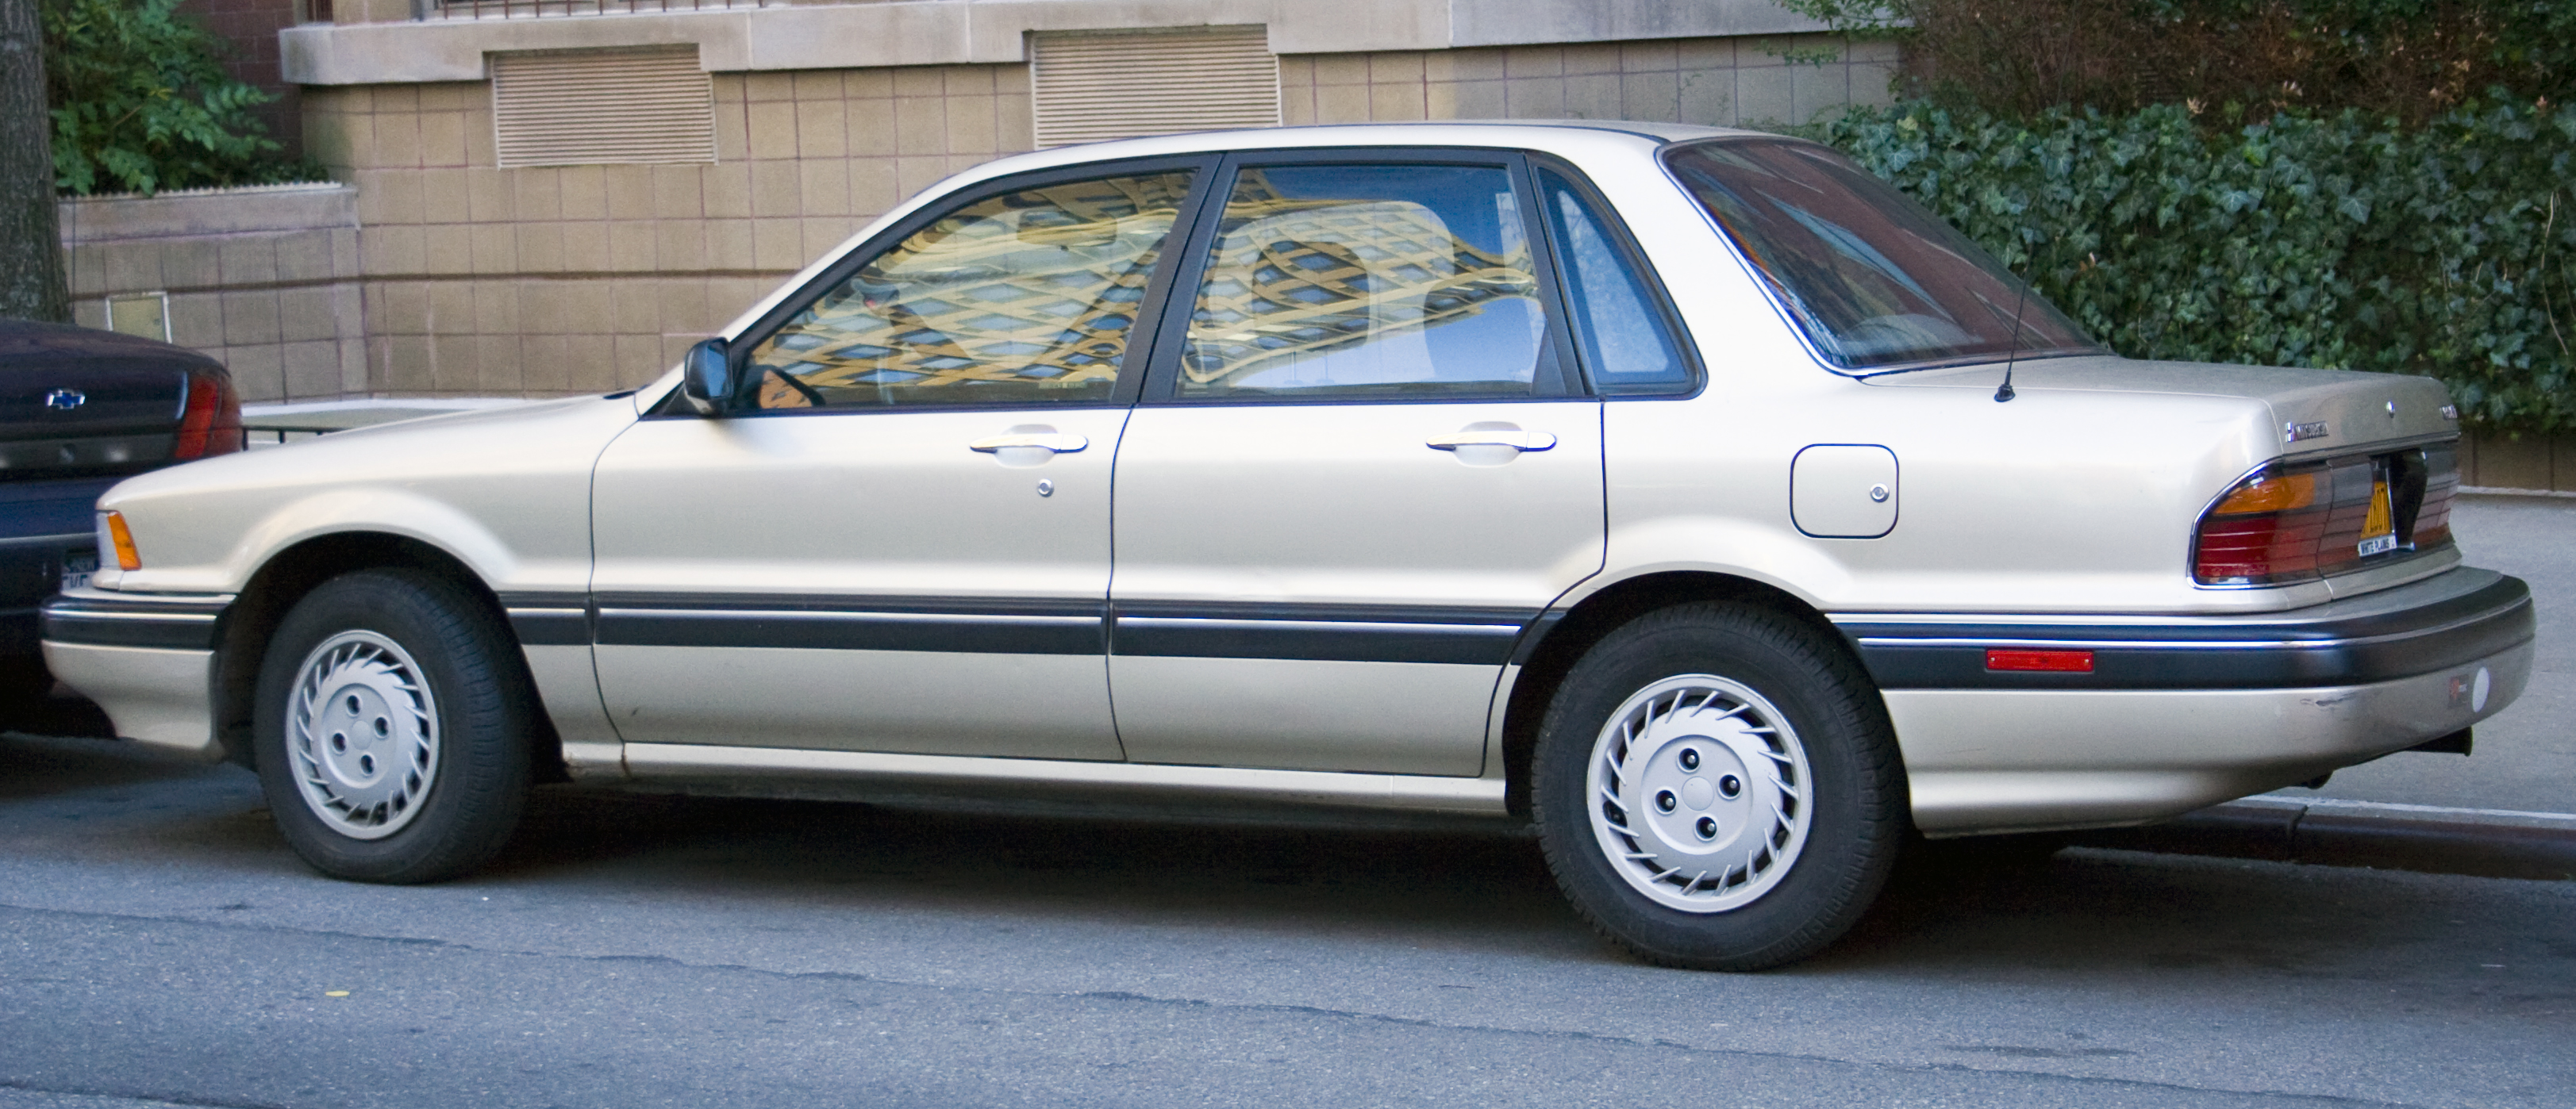 File:1990 Mitsubishi Galant rear.jpg - Wikimedia Commons